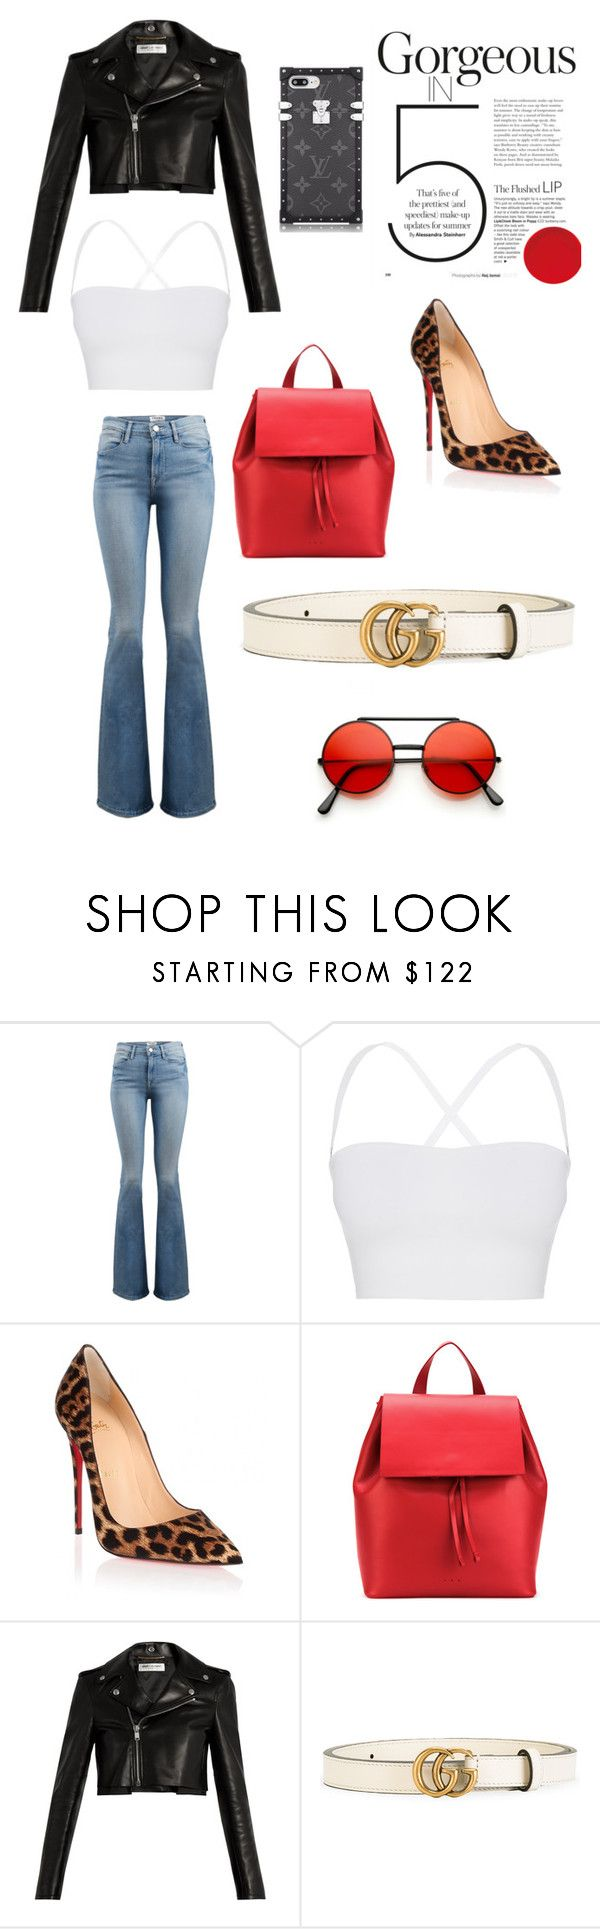 """Business Woman"" by fashionon5thave ❤ liked on Polyvore featuring Frame, Theory, Christian Louboutin, Aesther Ekme, Yves Saint Laurent and Gucci"